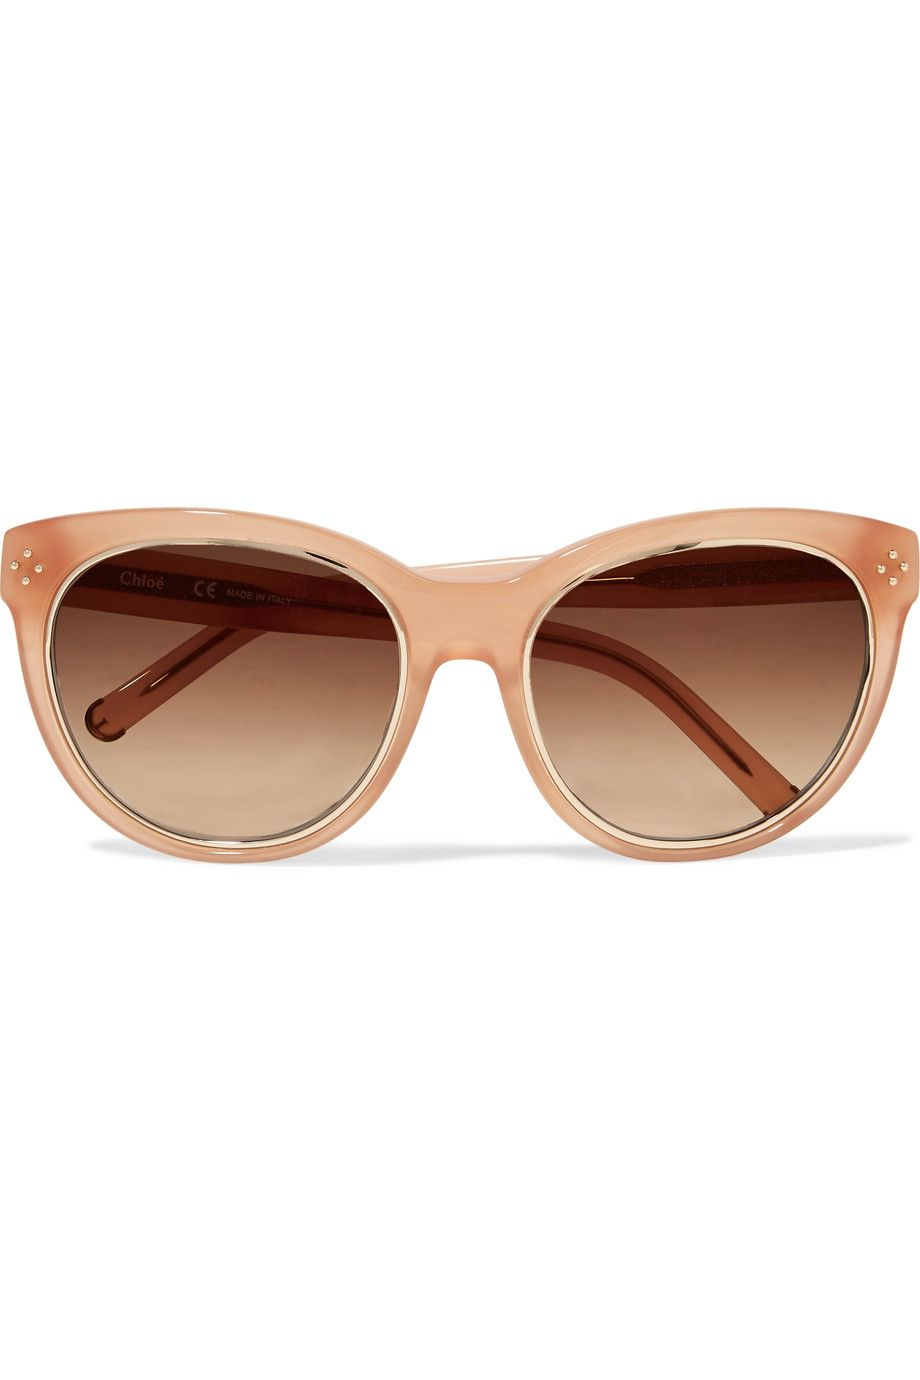 acd4d670880 Shop on-sale Chloé Round-frame acetate sunglasses. Browse other discount  designer Sunglasses   more on The Most Fashionable Fashion Outlet